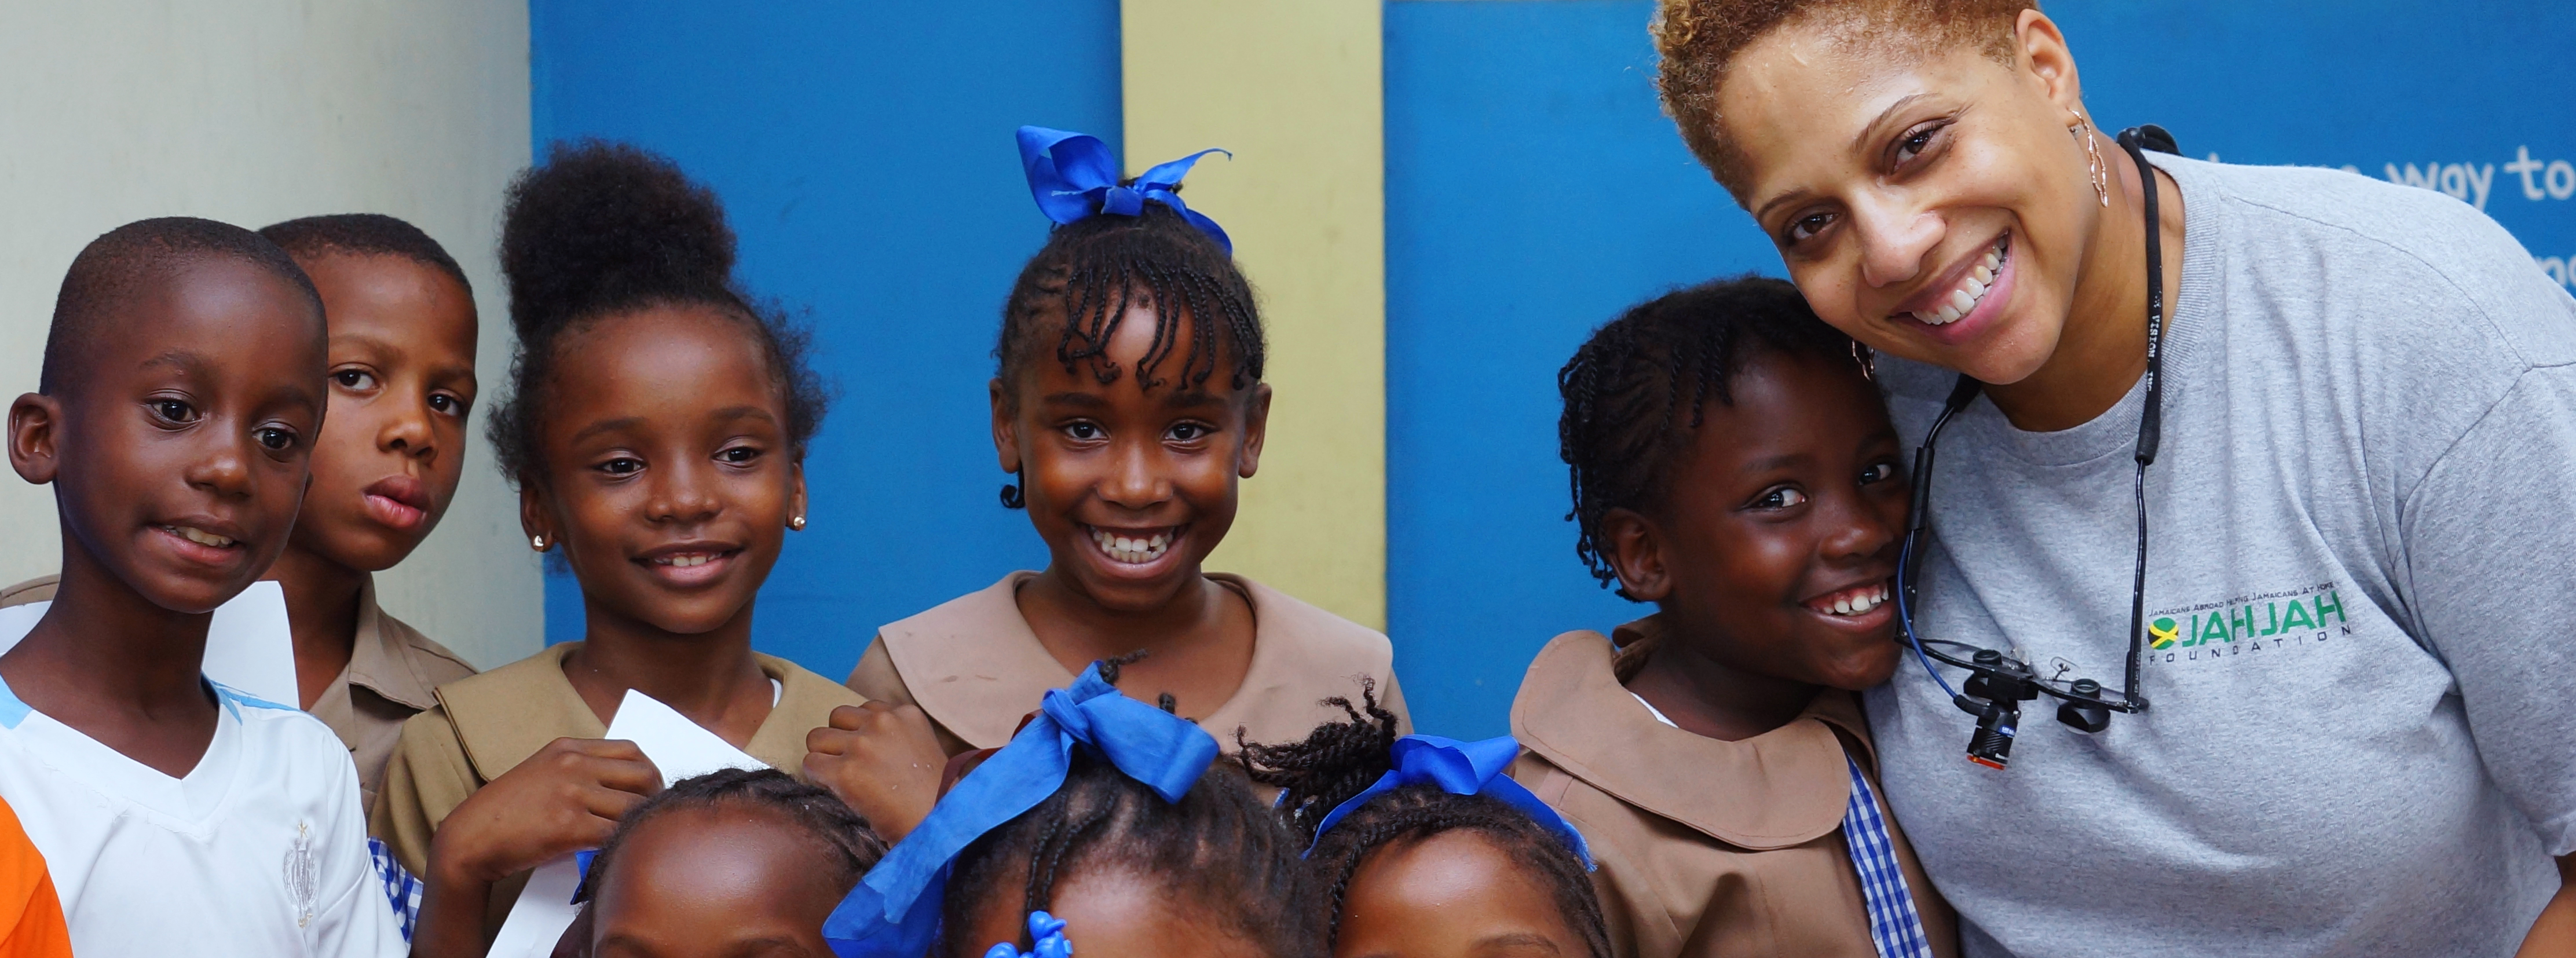 Donate And Help To Positively Impact Lives In Jamaica